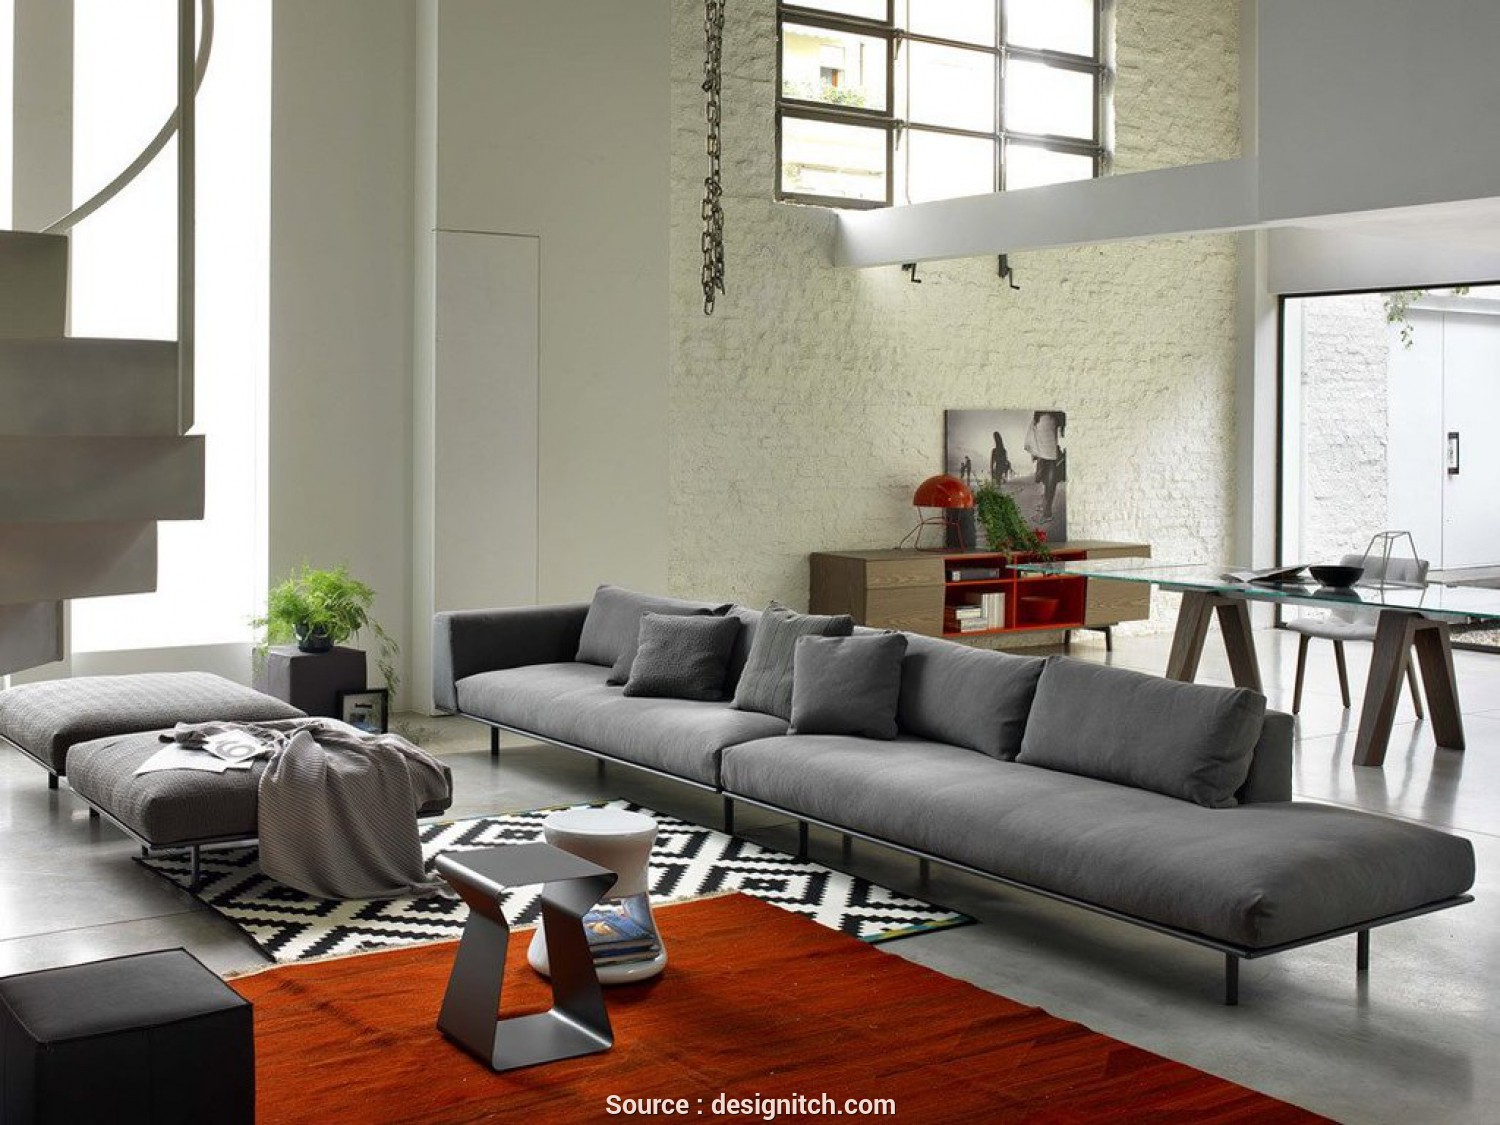 Bontempi Divani, Deale Dakota Sofa